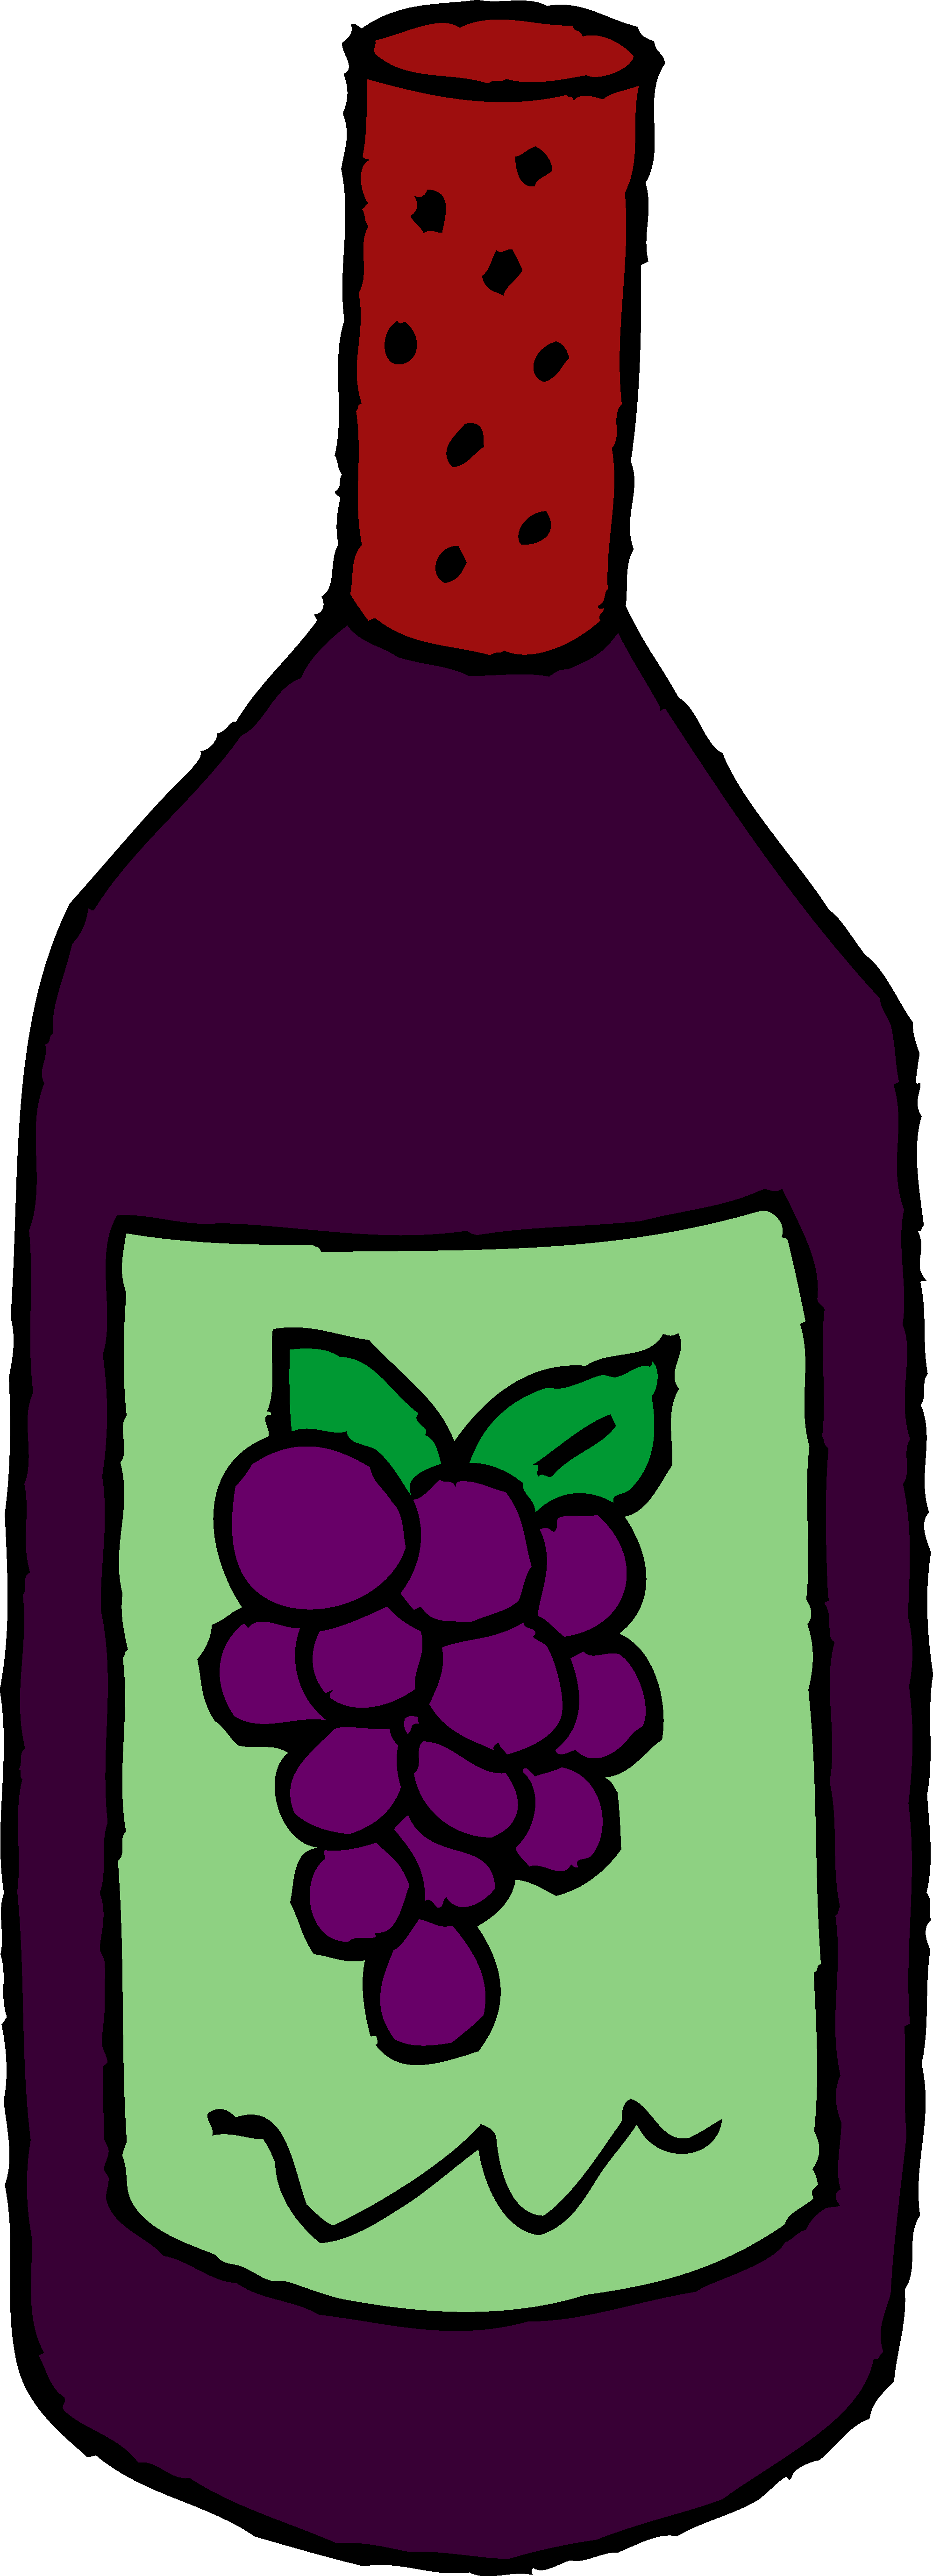 Wine label artwork clipart png free stock Free Wine Cartoon Cliparts, Download Free Clip Art, Free ... png free stock